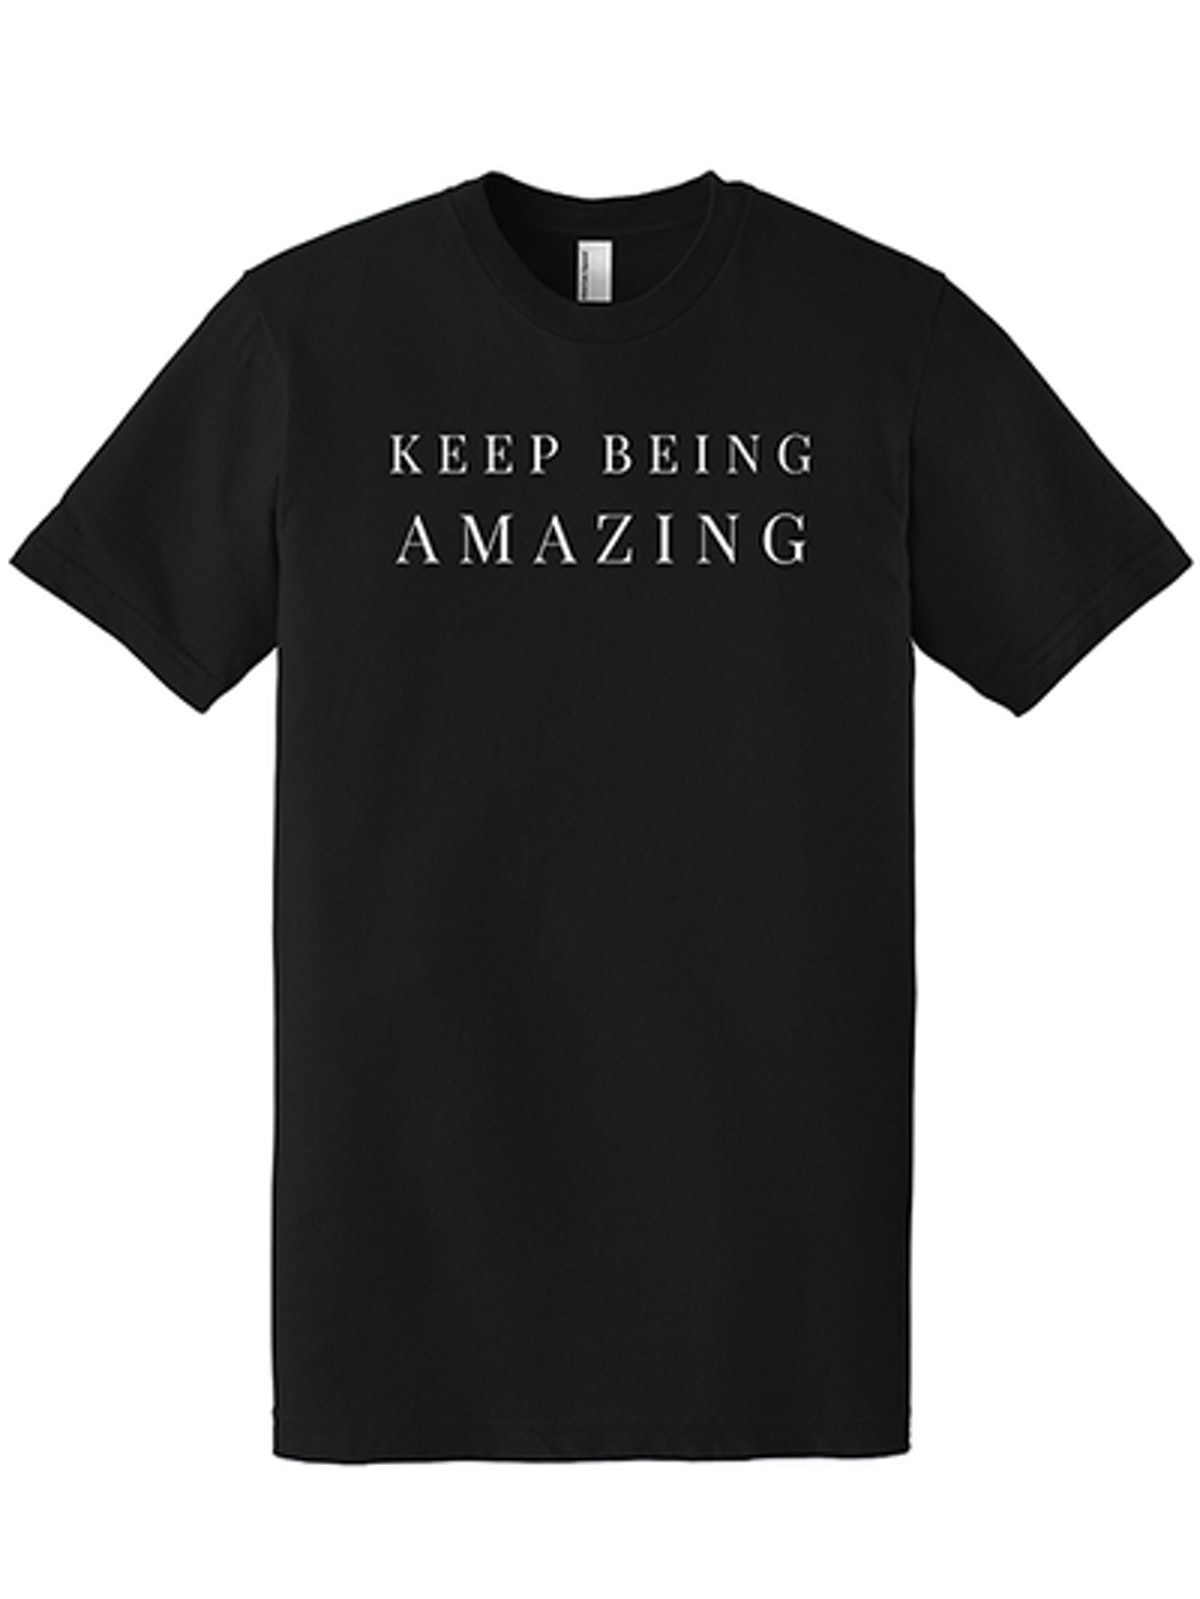 Keep Being Amazing T-Shirt